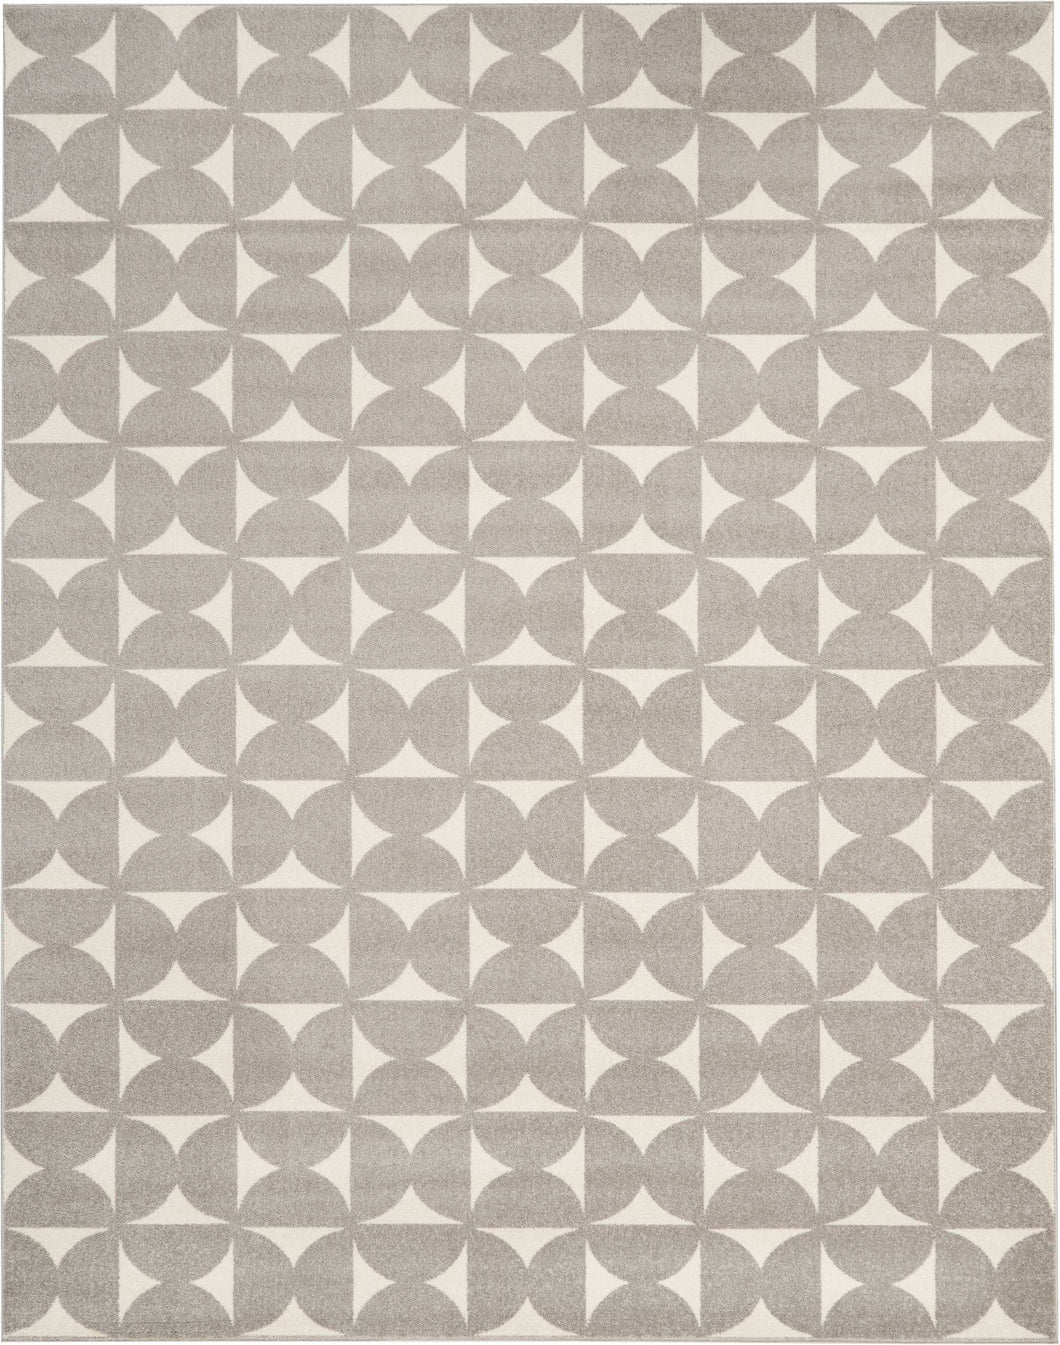 Nourison Harper DS301 Grey 8'x10' Large Rug DS301 Grey